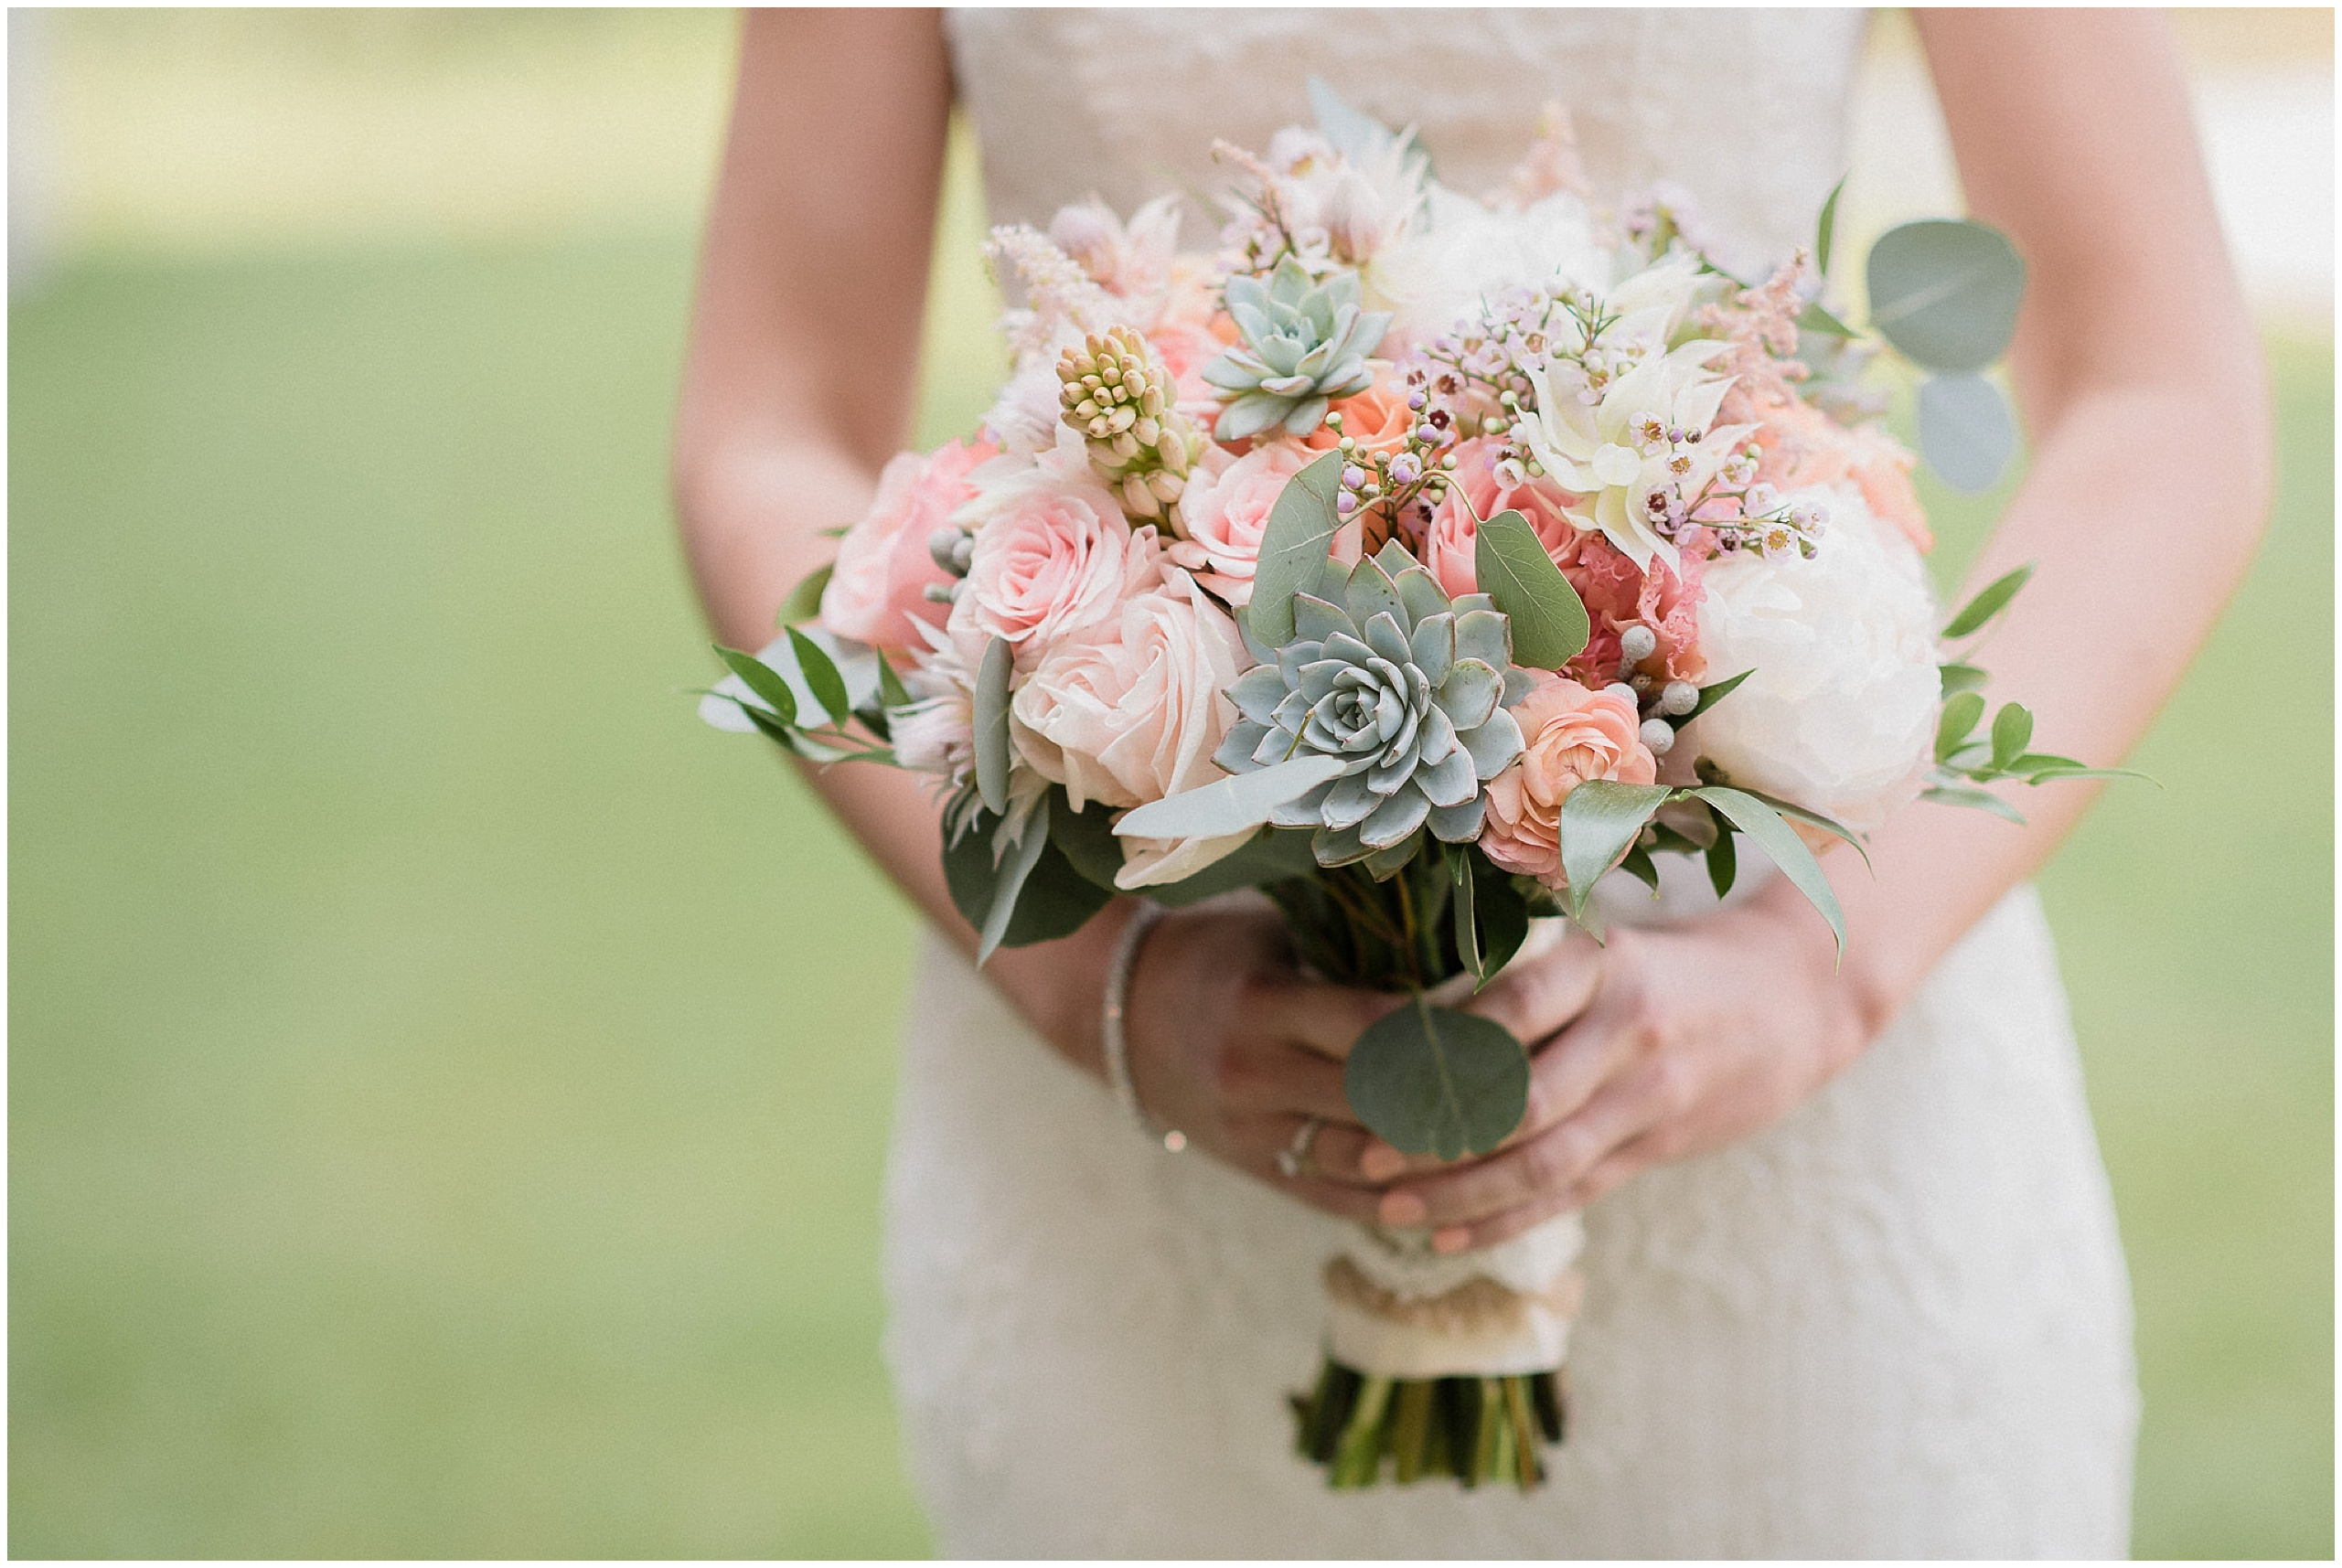 Bride's bouquet with succulents, garden roses, and peonies. Photographed by Jenn Kavanagh Photography